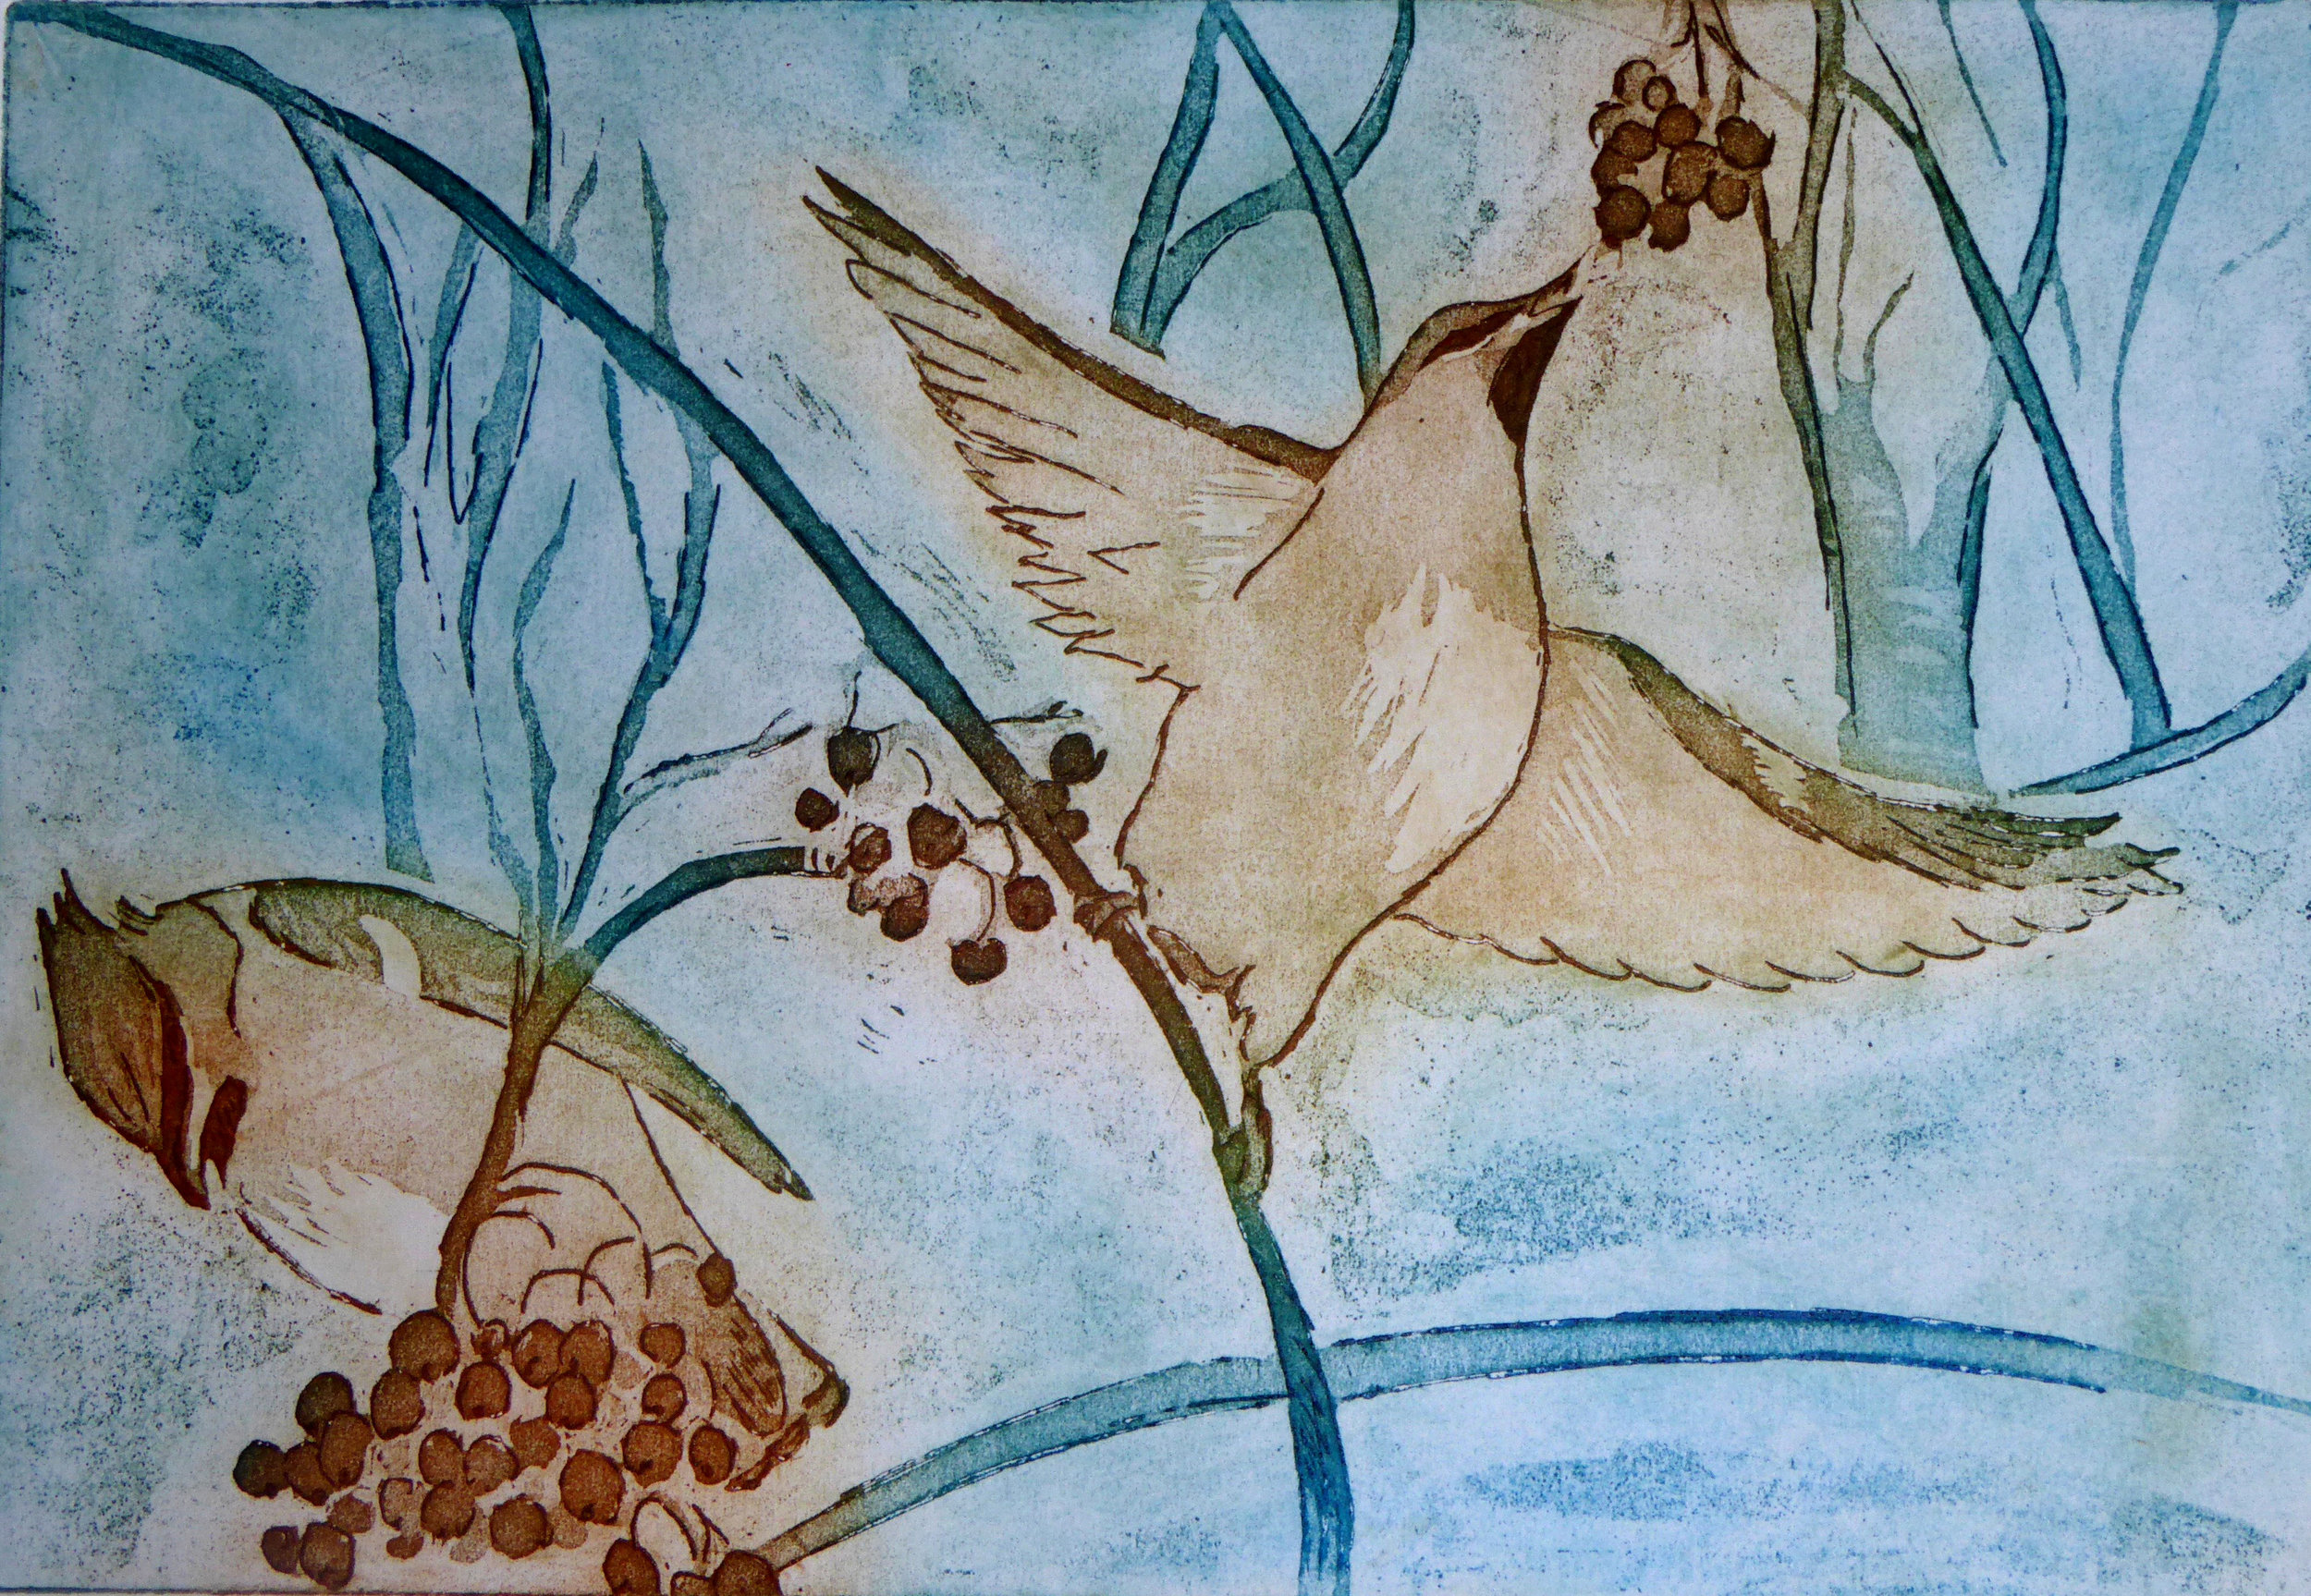 Birds and Berries - 40 x 33cm (unframed)